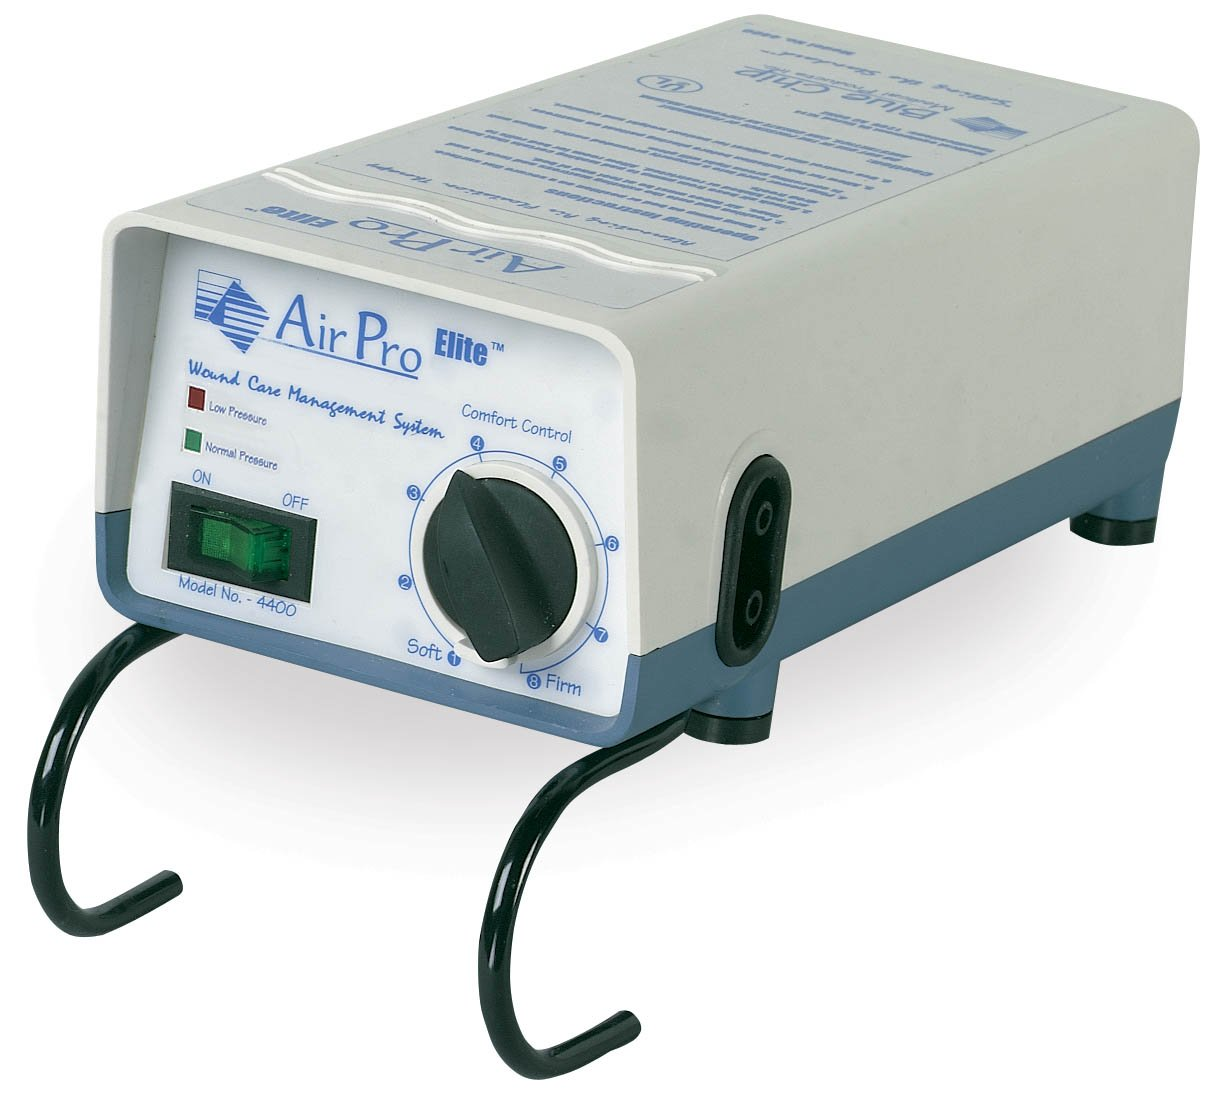 ADJUSTABLE REPLACEMENT PUMP For Blue Chip Medical AIR PRO ELITE Model 4400 & 4810. 8 Comfort Settings PUMP ONLY NO PAD